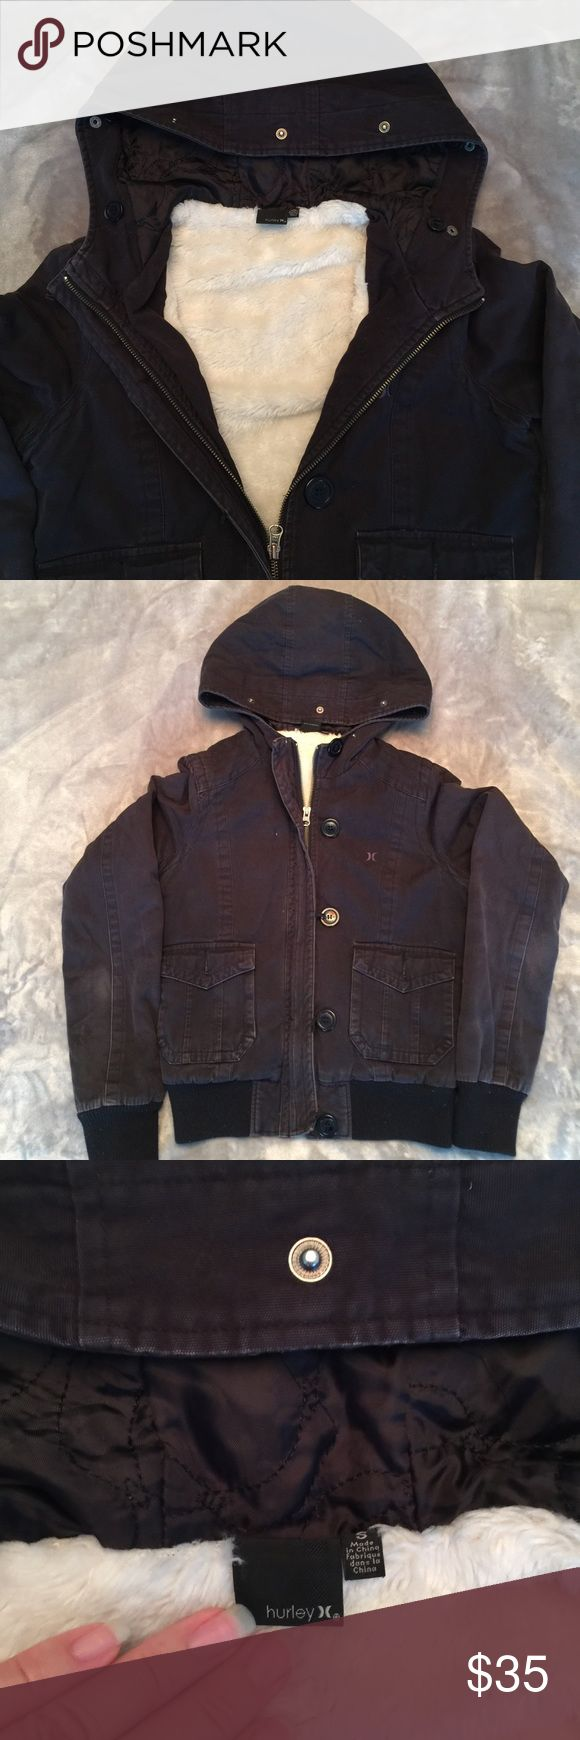 HURLEY Juniors black cotton jacket. Very good used HURLEY Juniors black cotton jacket. Very good used condition. Slight wear on elbows of sleeves. Elastic ribbing on cuffs and waist. Excellent Metal zip and button front with elastic bands to go around buttons. Cozy Fleece Inside excluding sleeves. Very nice med. weight jacket. Previously loved. 😍 Hurley Jackets & Coats Jean Jackets